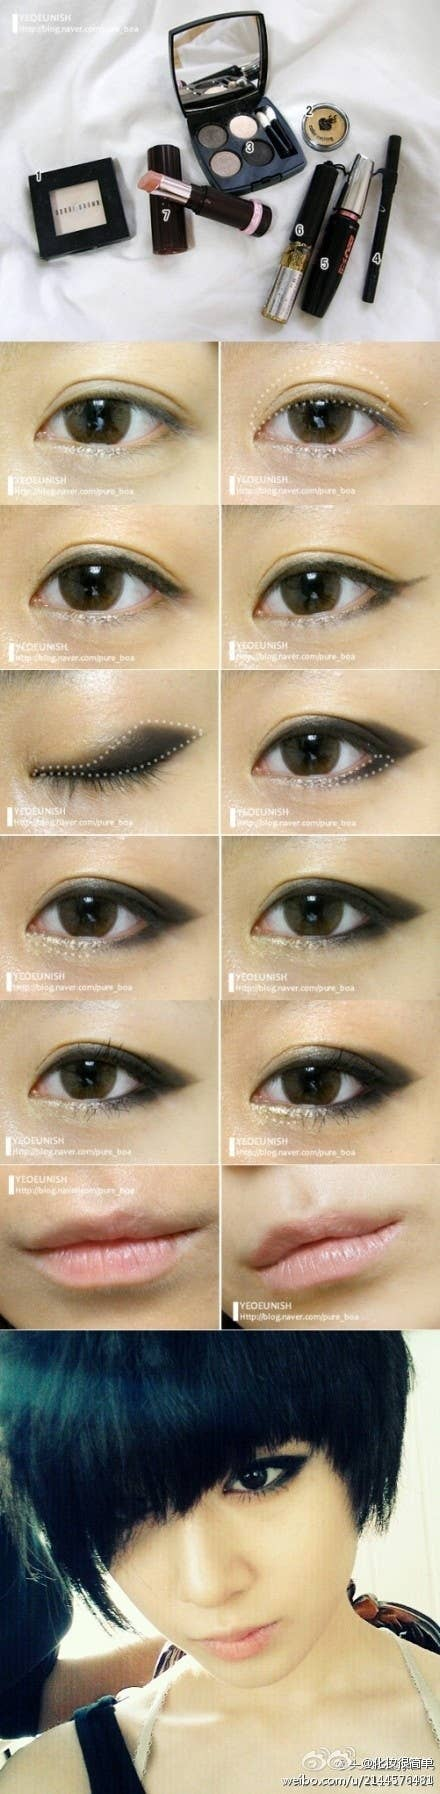 19 awesome eye makeup ideas for asians apply black eyeshadow in a whale shape to create this winged smoky eye look baditri Choice Image